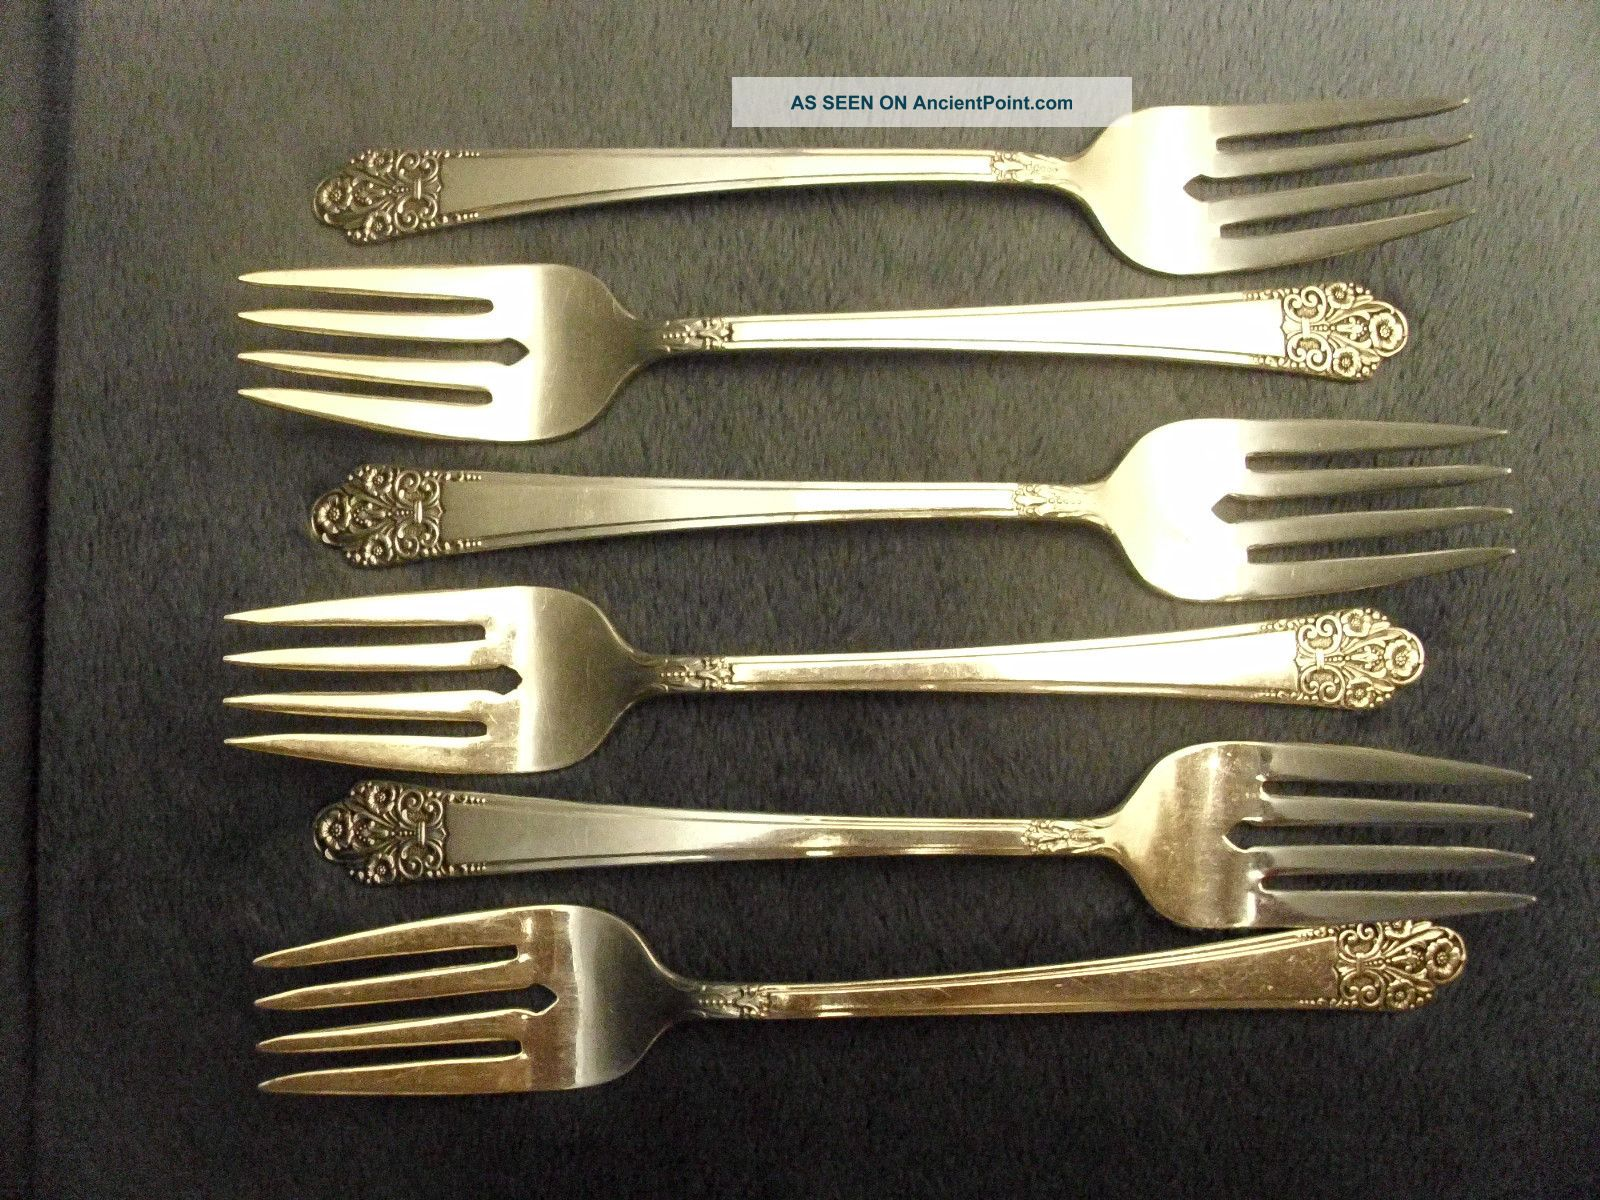 6 Vintage Rogers Deluxe Plate Rogers Precious Pattern Forks Other photo